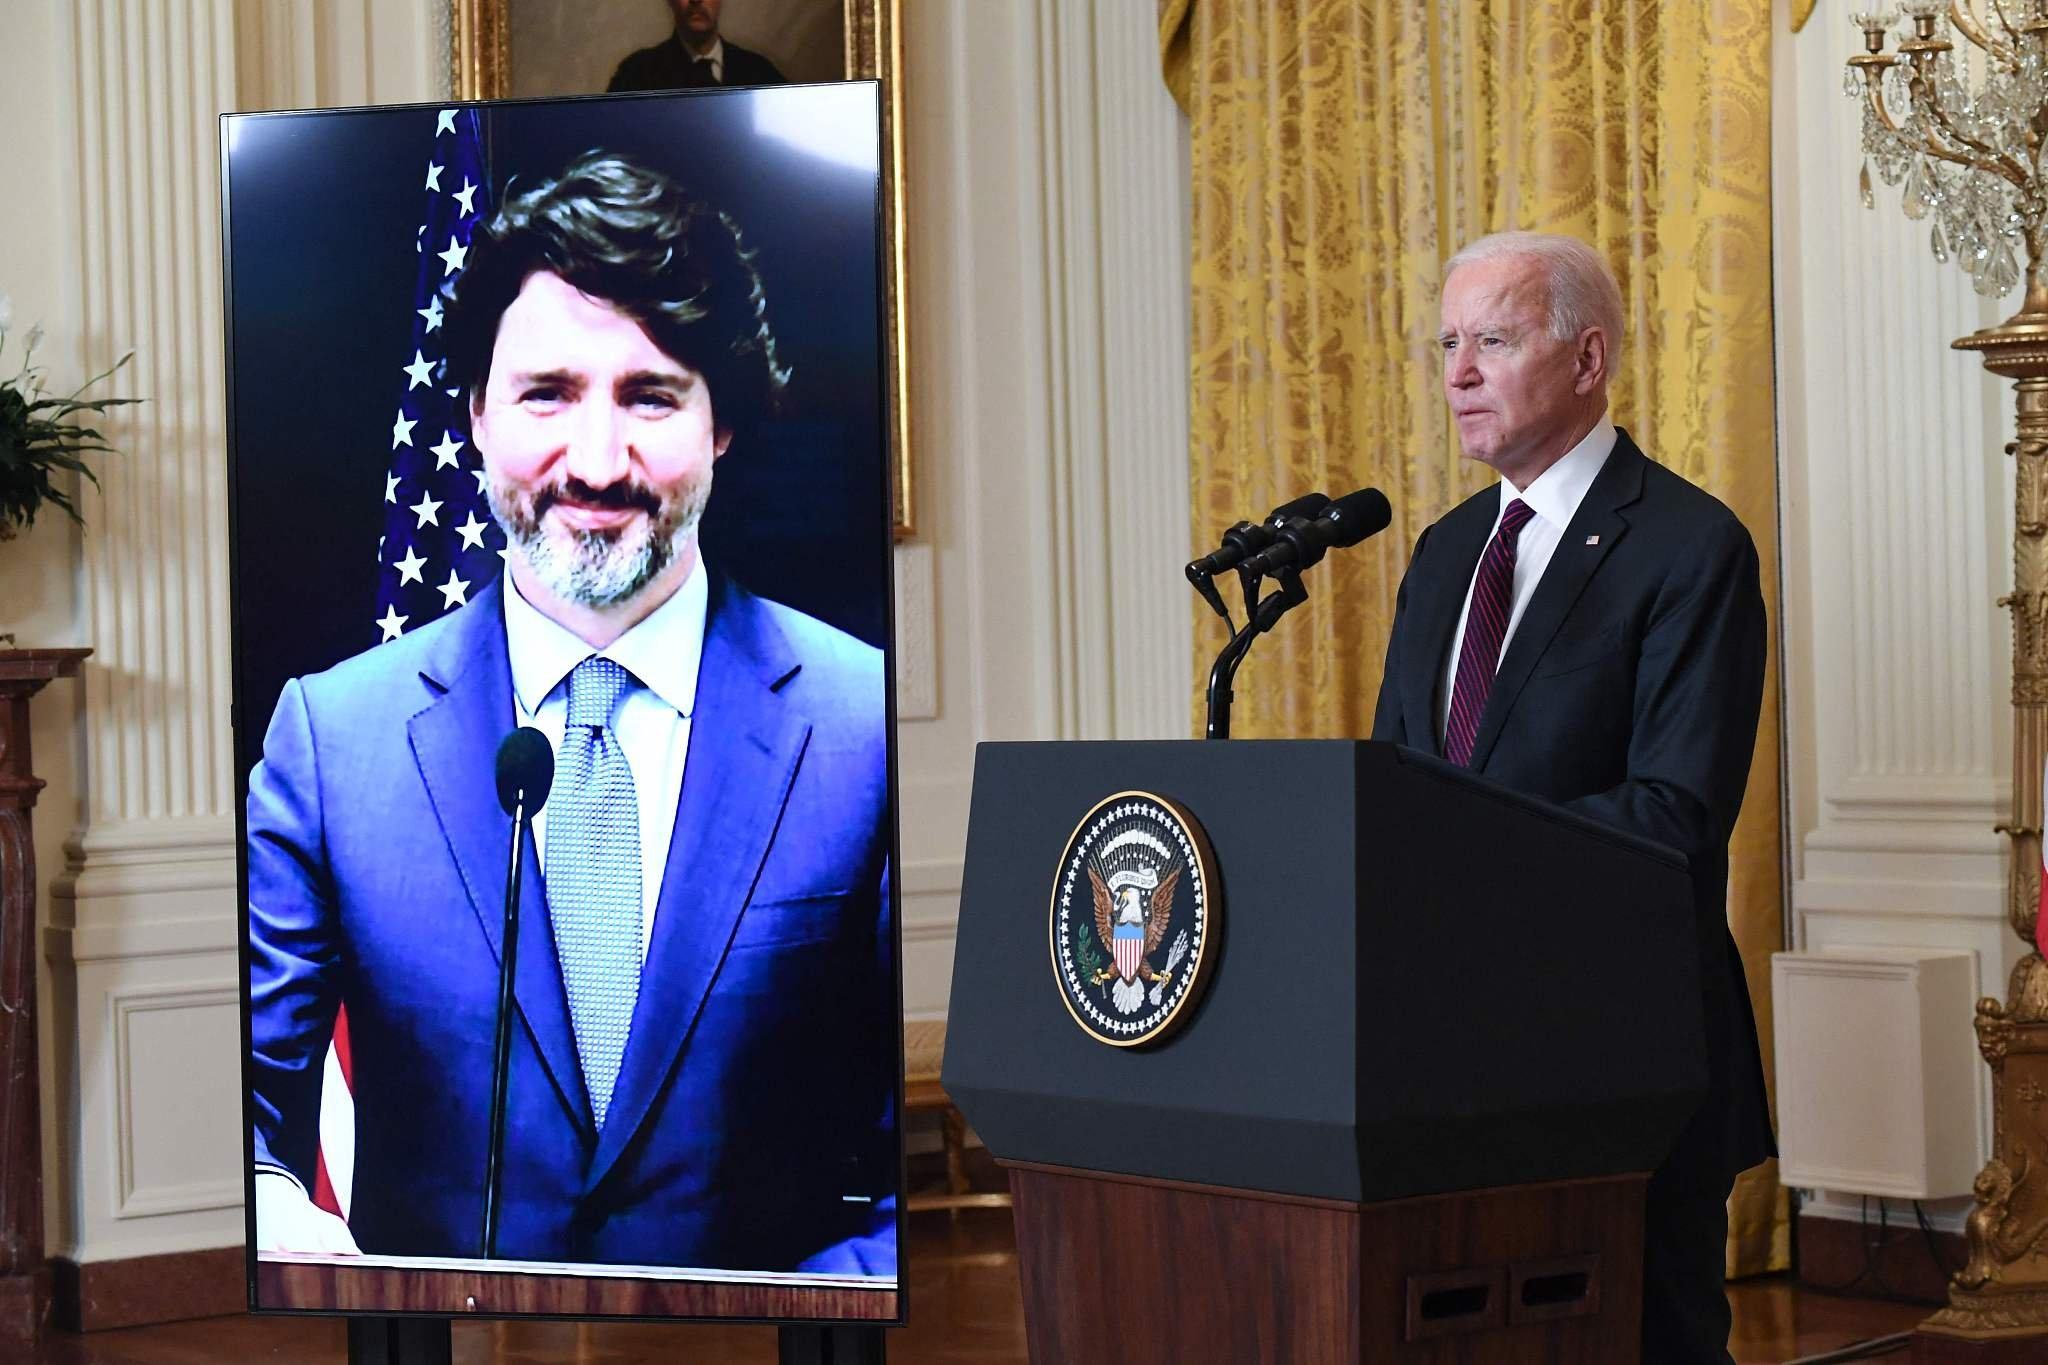 The United States has no closer friend than Canada